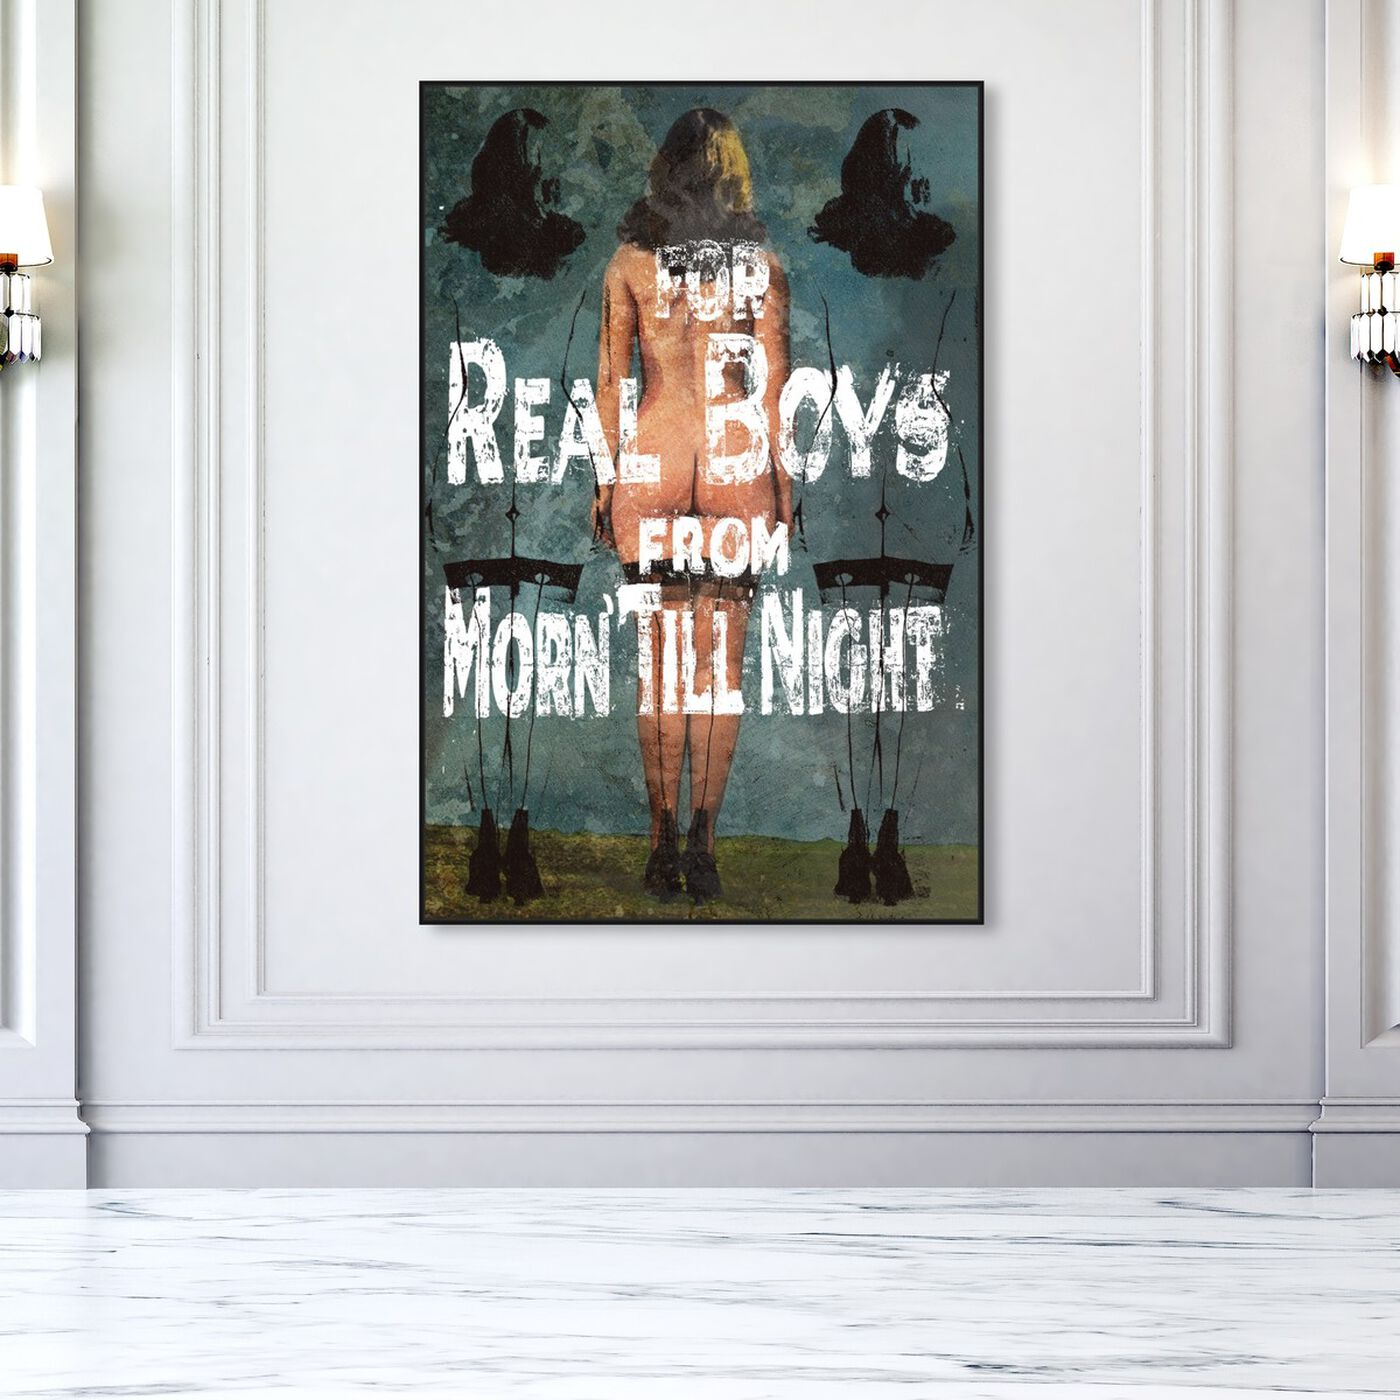 Hanging view of For Real Boys featuring holiday and seasonal and holidays art.